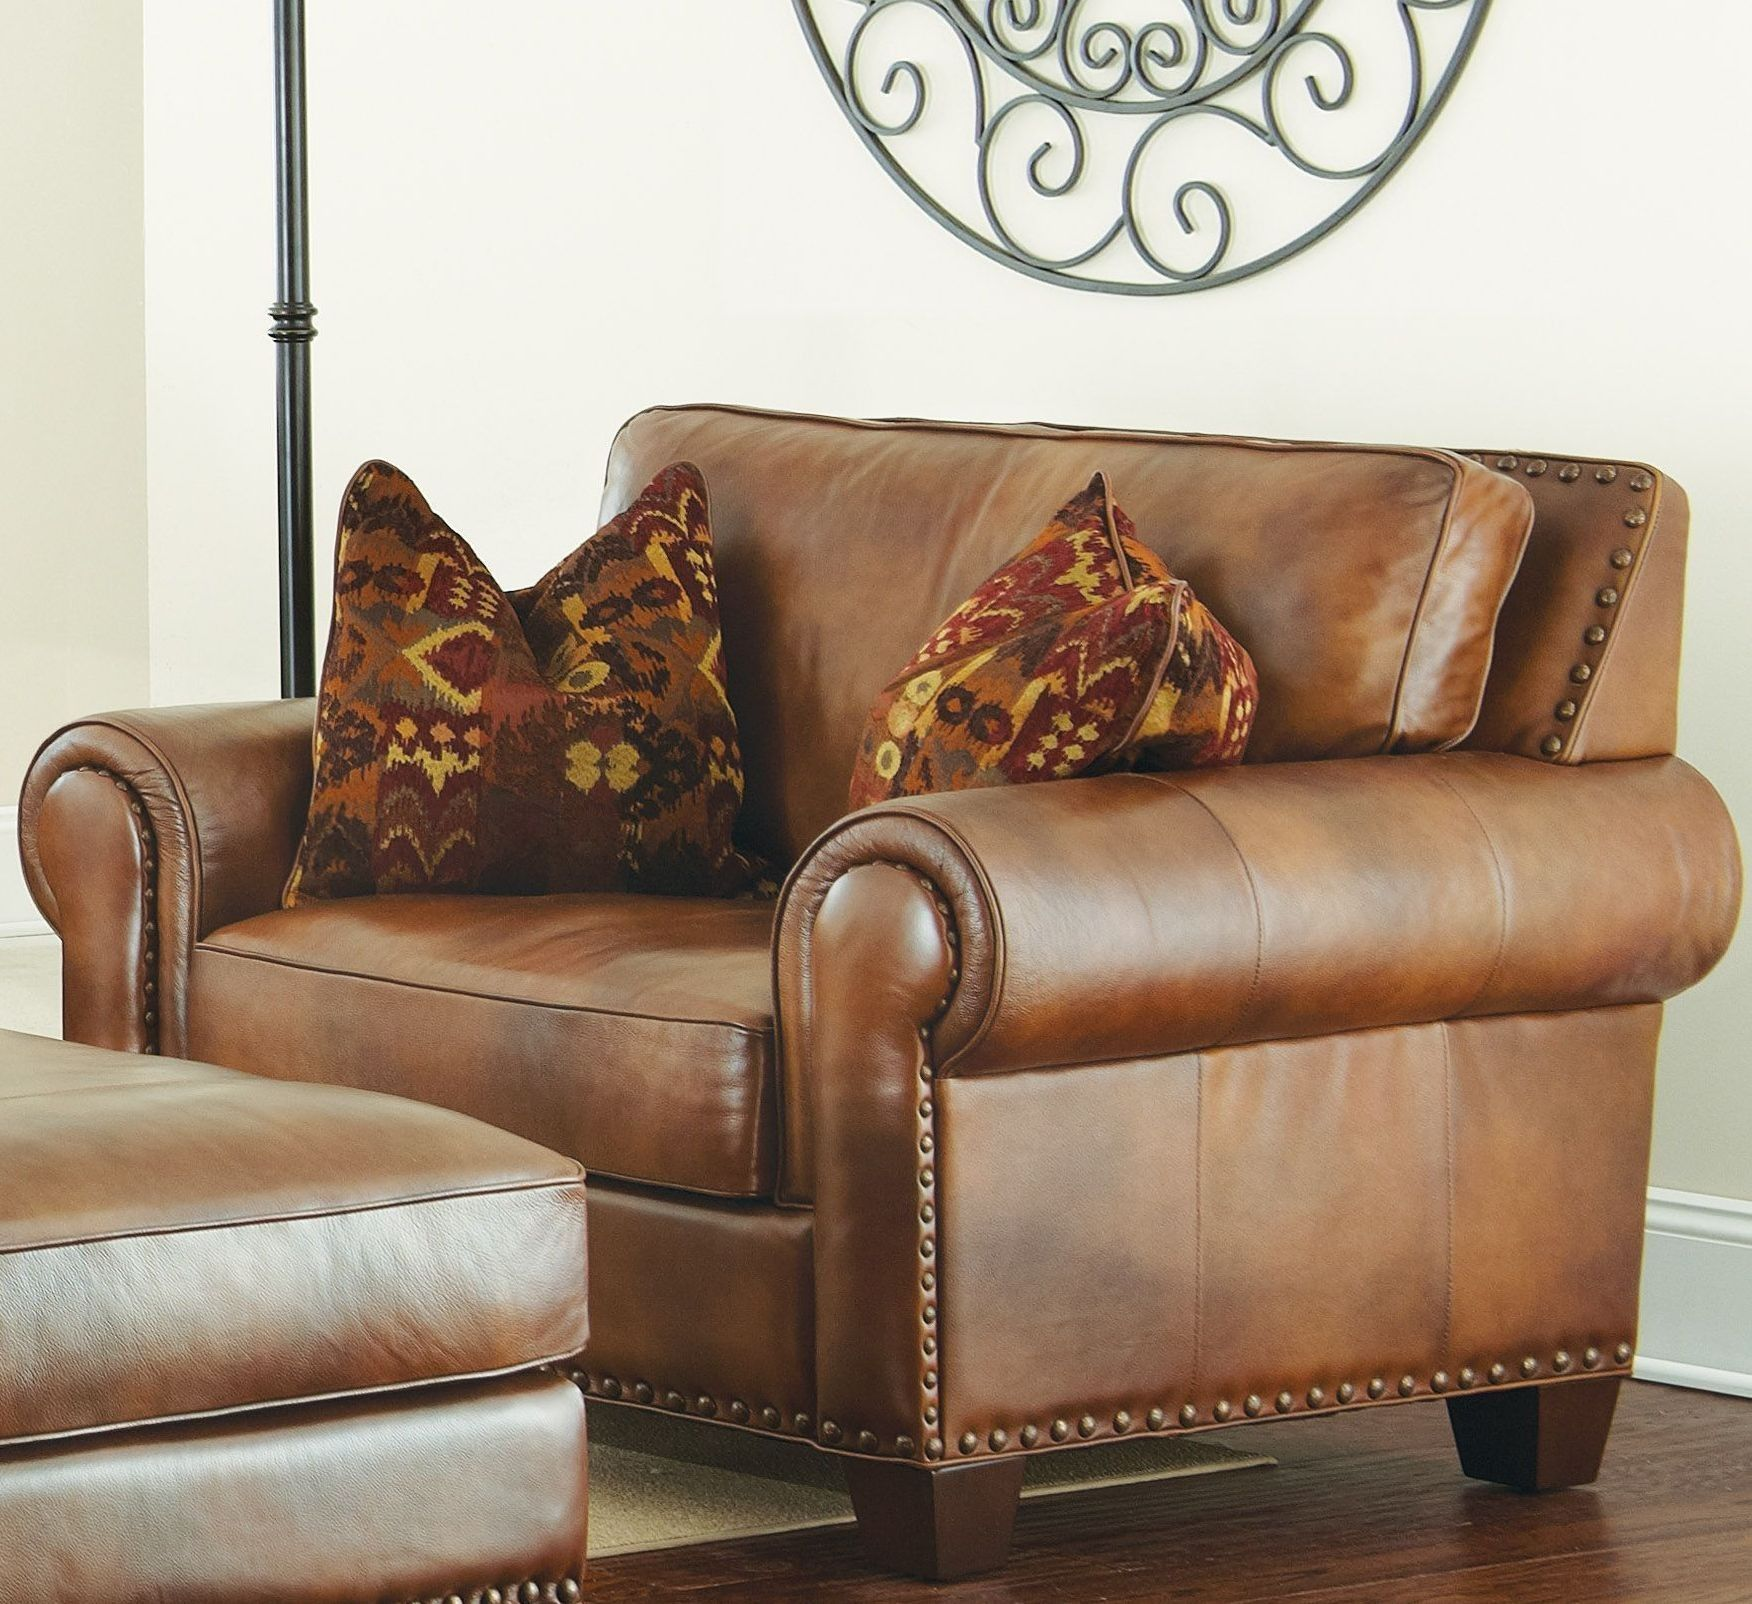 Silverado Caramel Brown Leather Chair In 2021 Brown Leather Chairs Traditional Chairs Chair And A Half